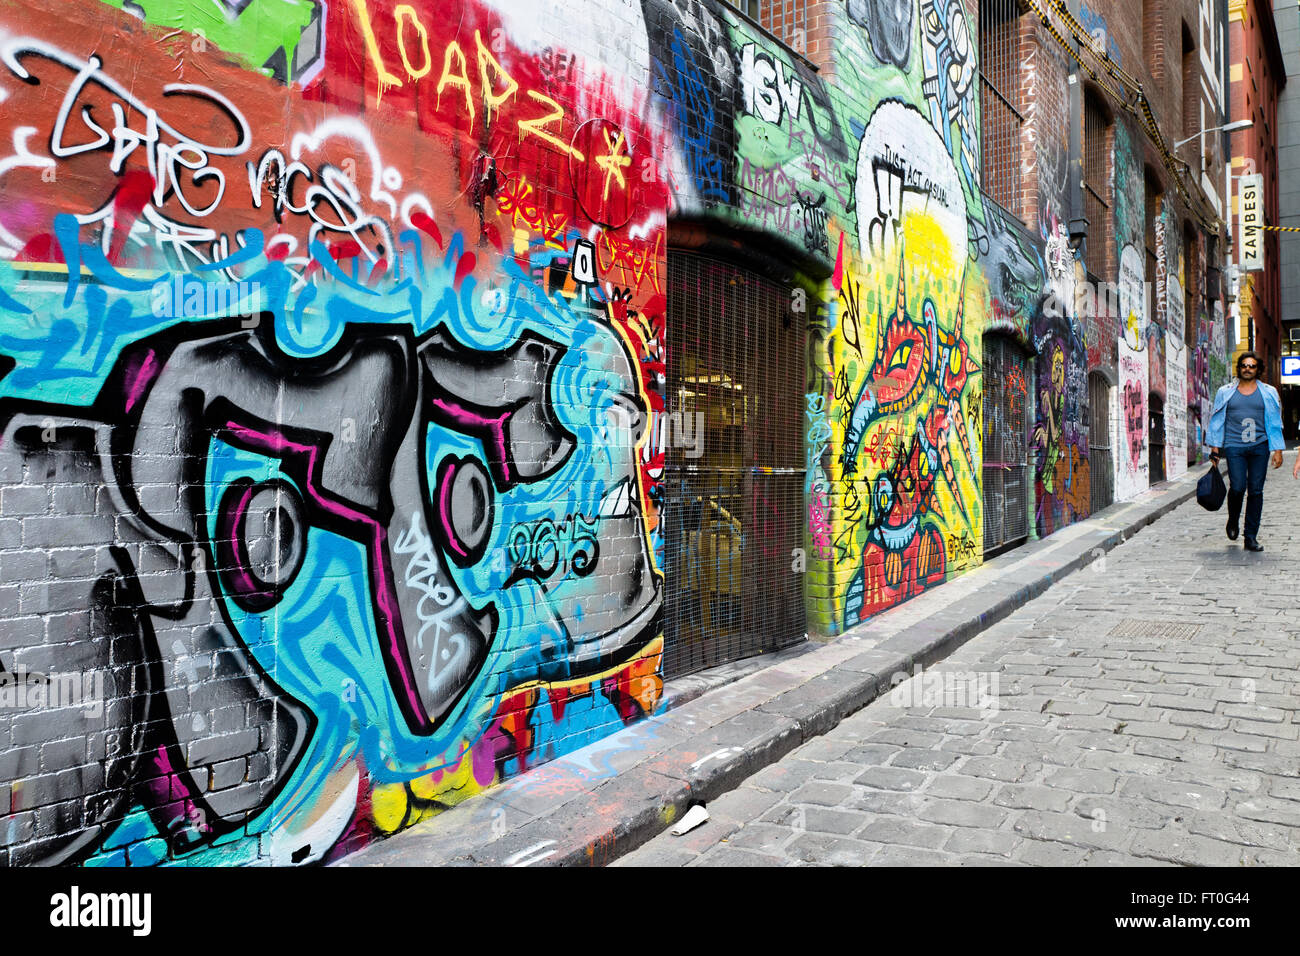 Hosier lane in Melbourne is famous for its graffiti and street art - Stock Image